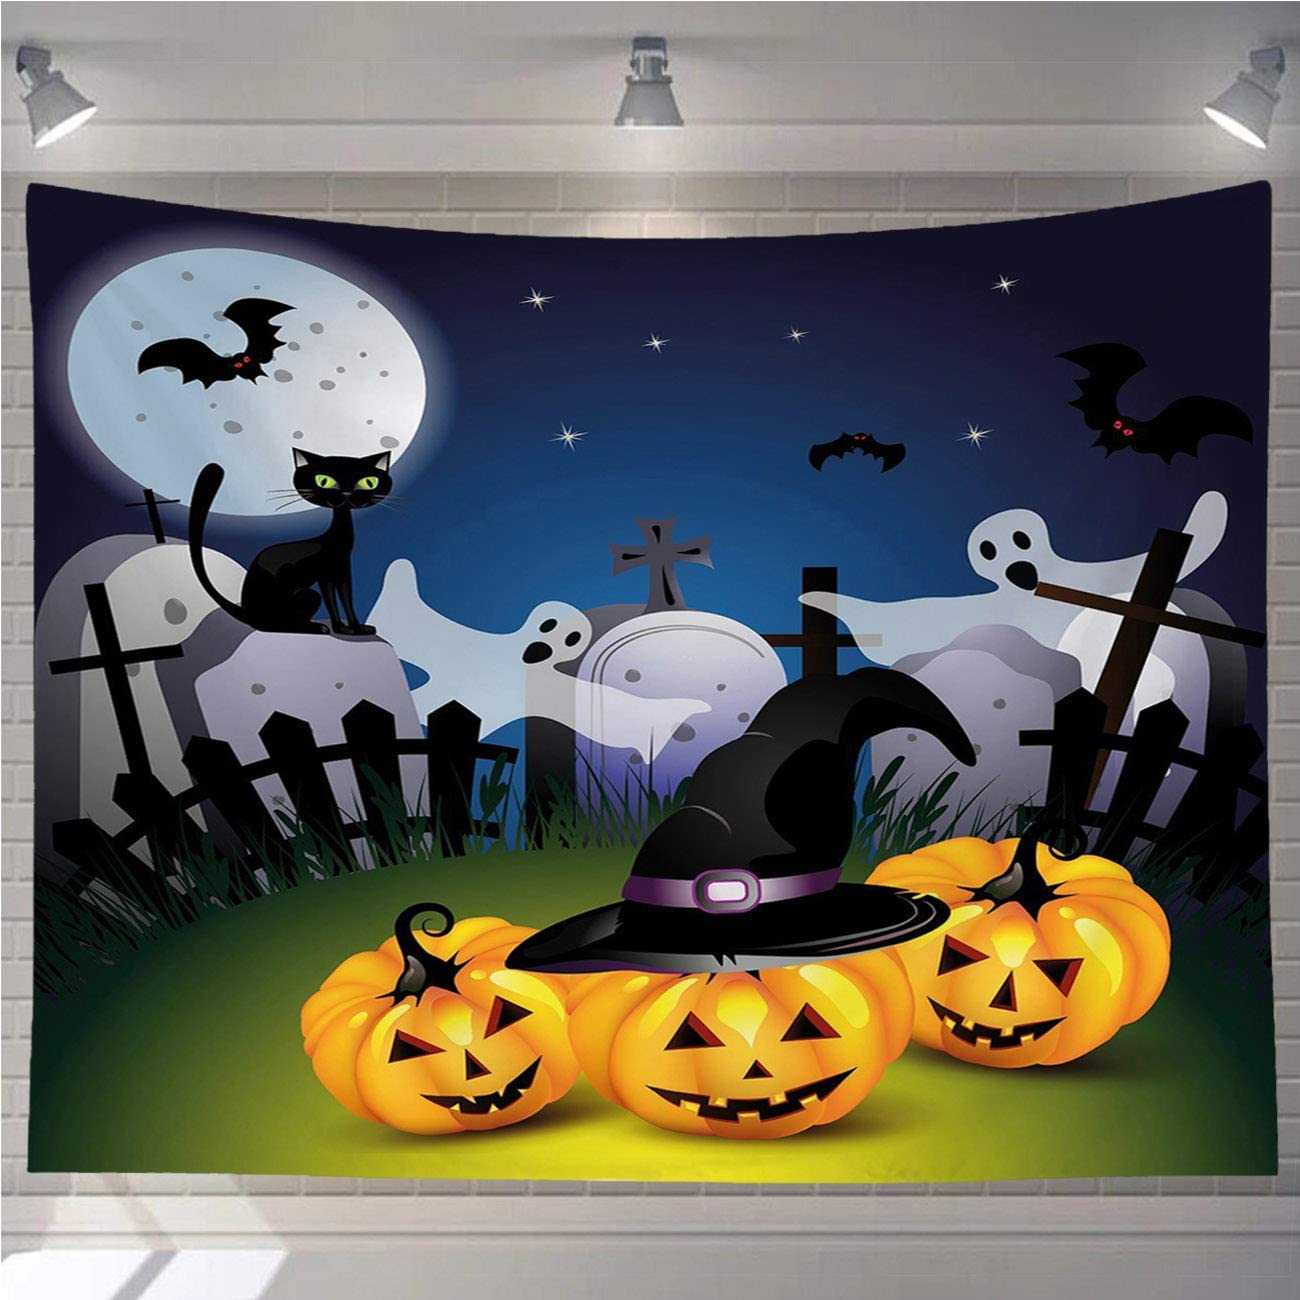 OTTOSUN Halloween Tapestry Wall Hanging,Halloween Funny Cartoon Pumpkins Witches Hat Ghosts Graveyard Full Moon Cat Multicolor,Wall Art for Living Room Bedroom Home Decor,60x50 in